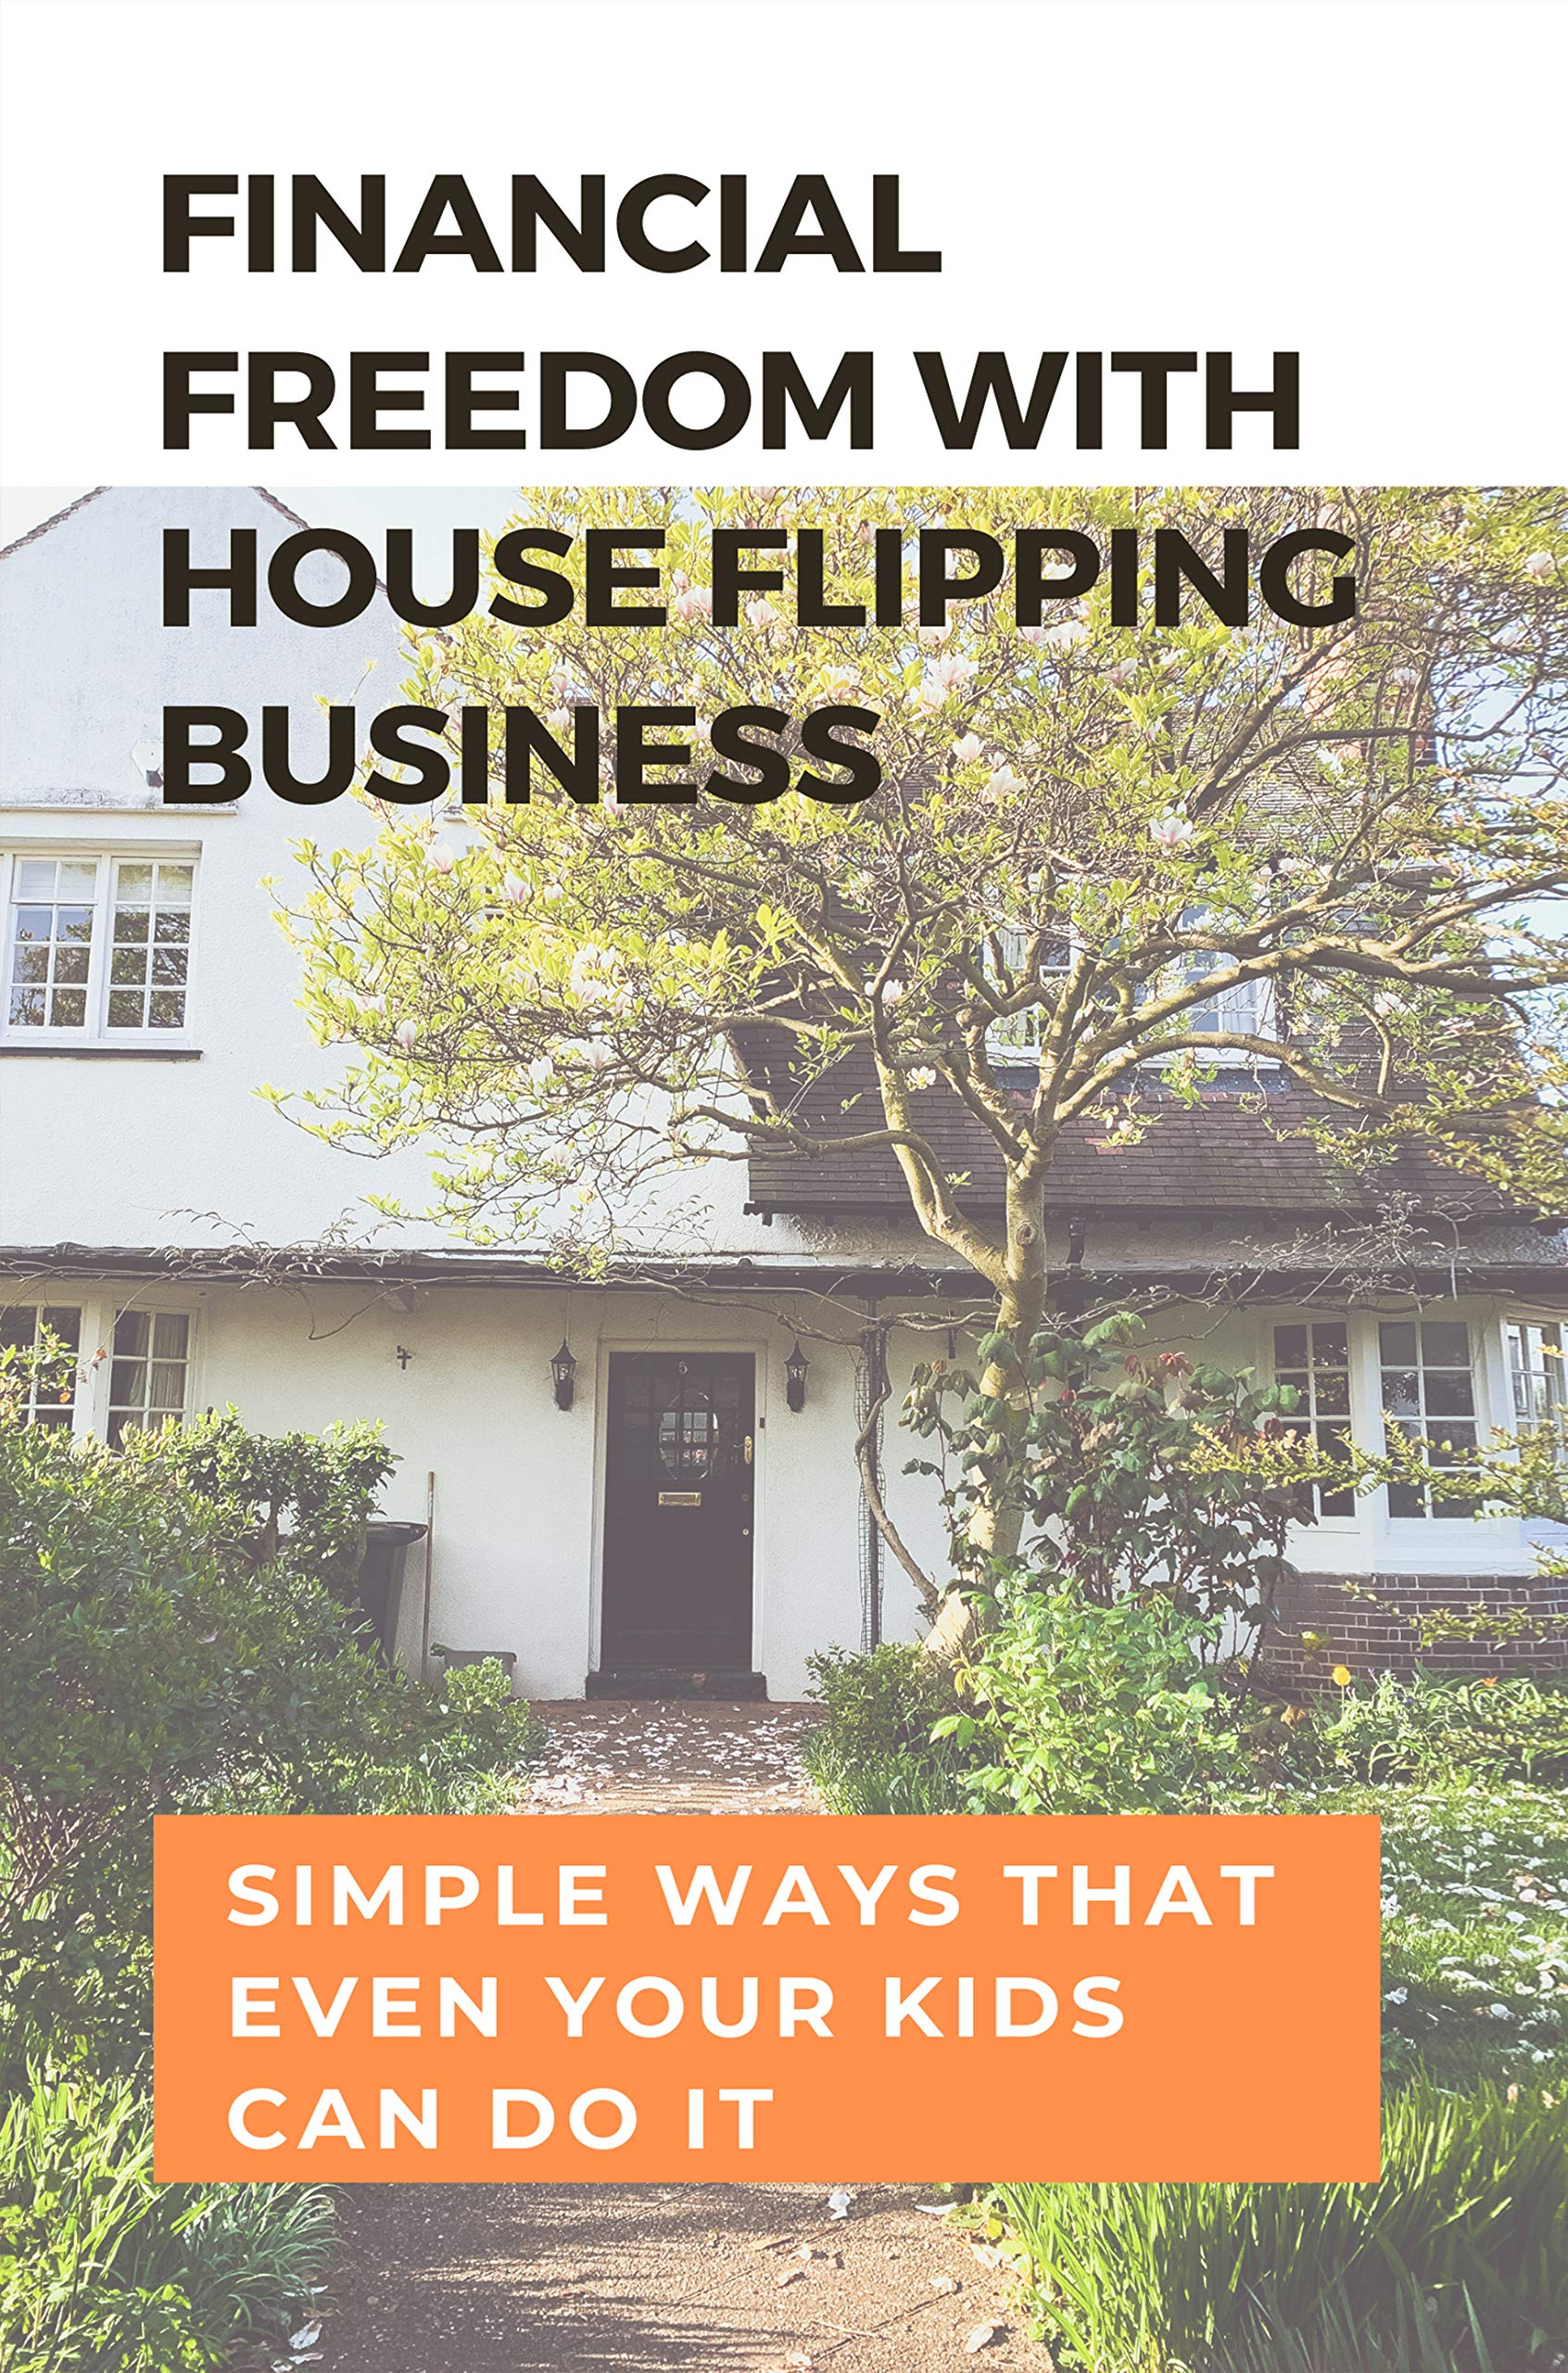 Financial Freedom With House Flipping Business: Simple Ways That Even Your Kids Can Do It: Home Improvement Books